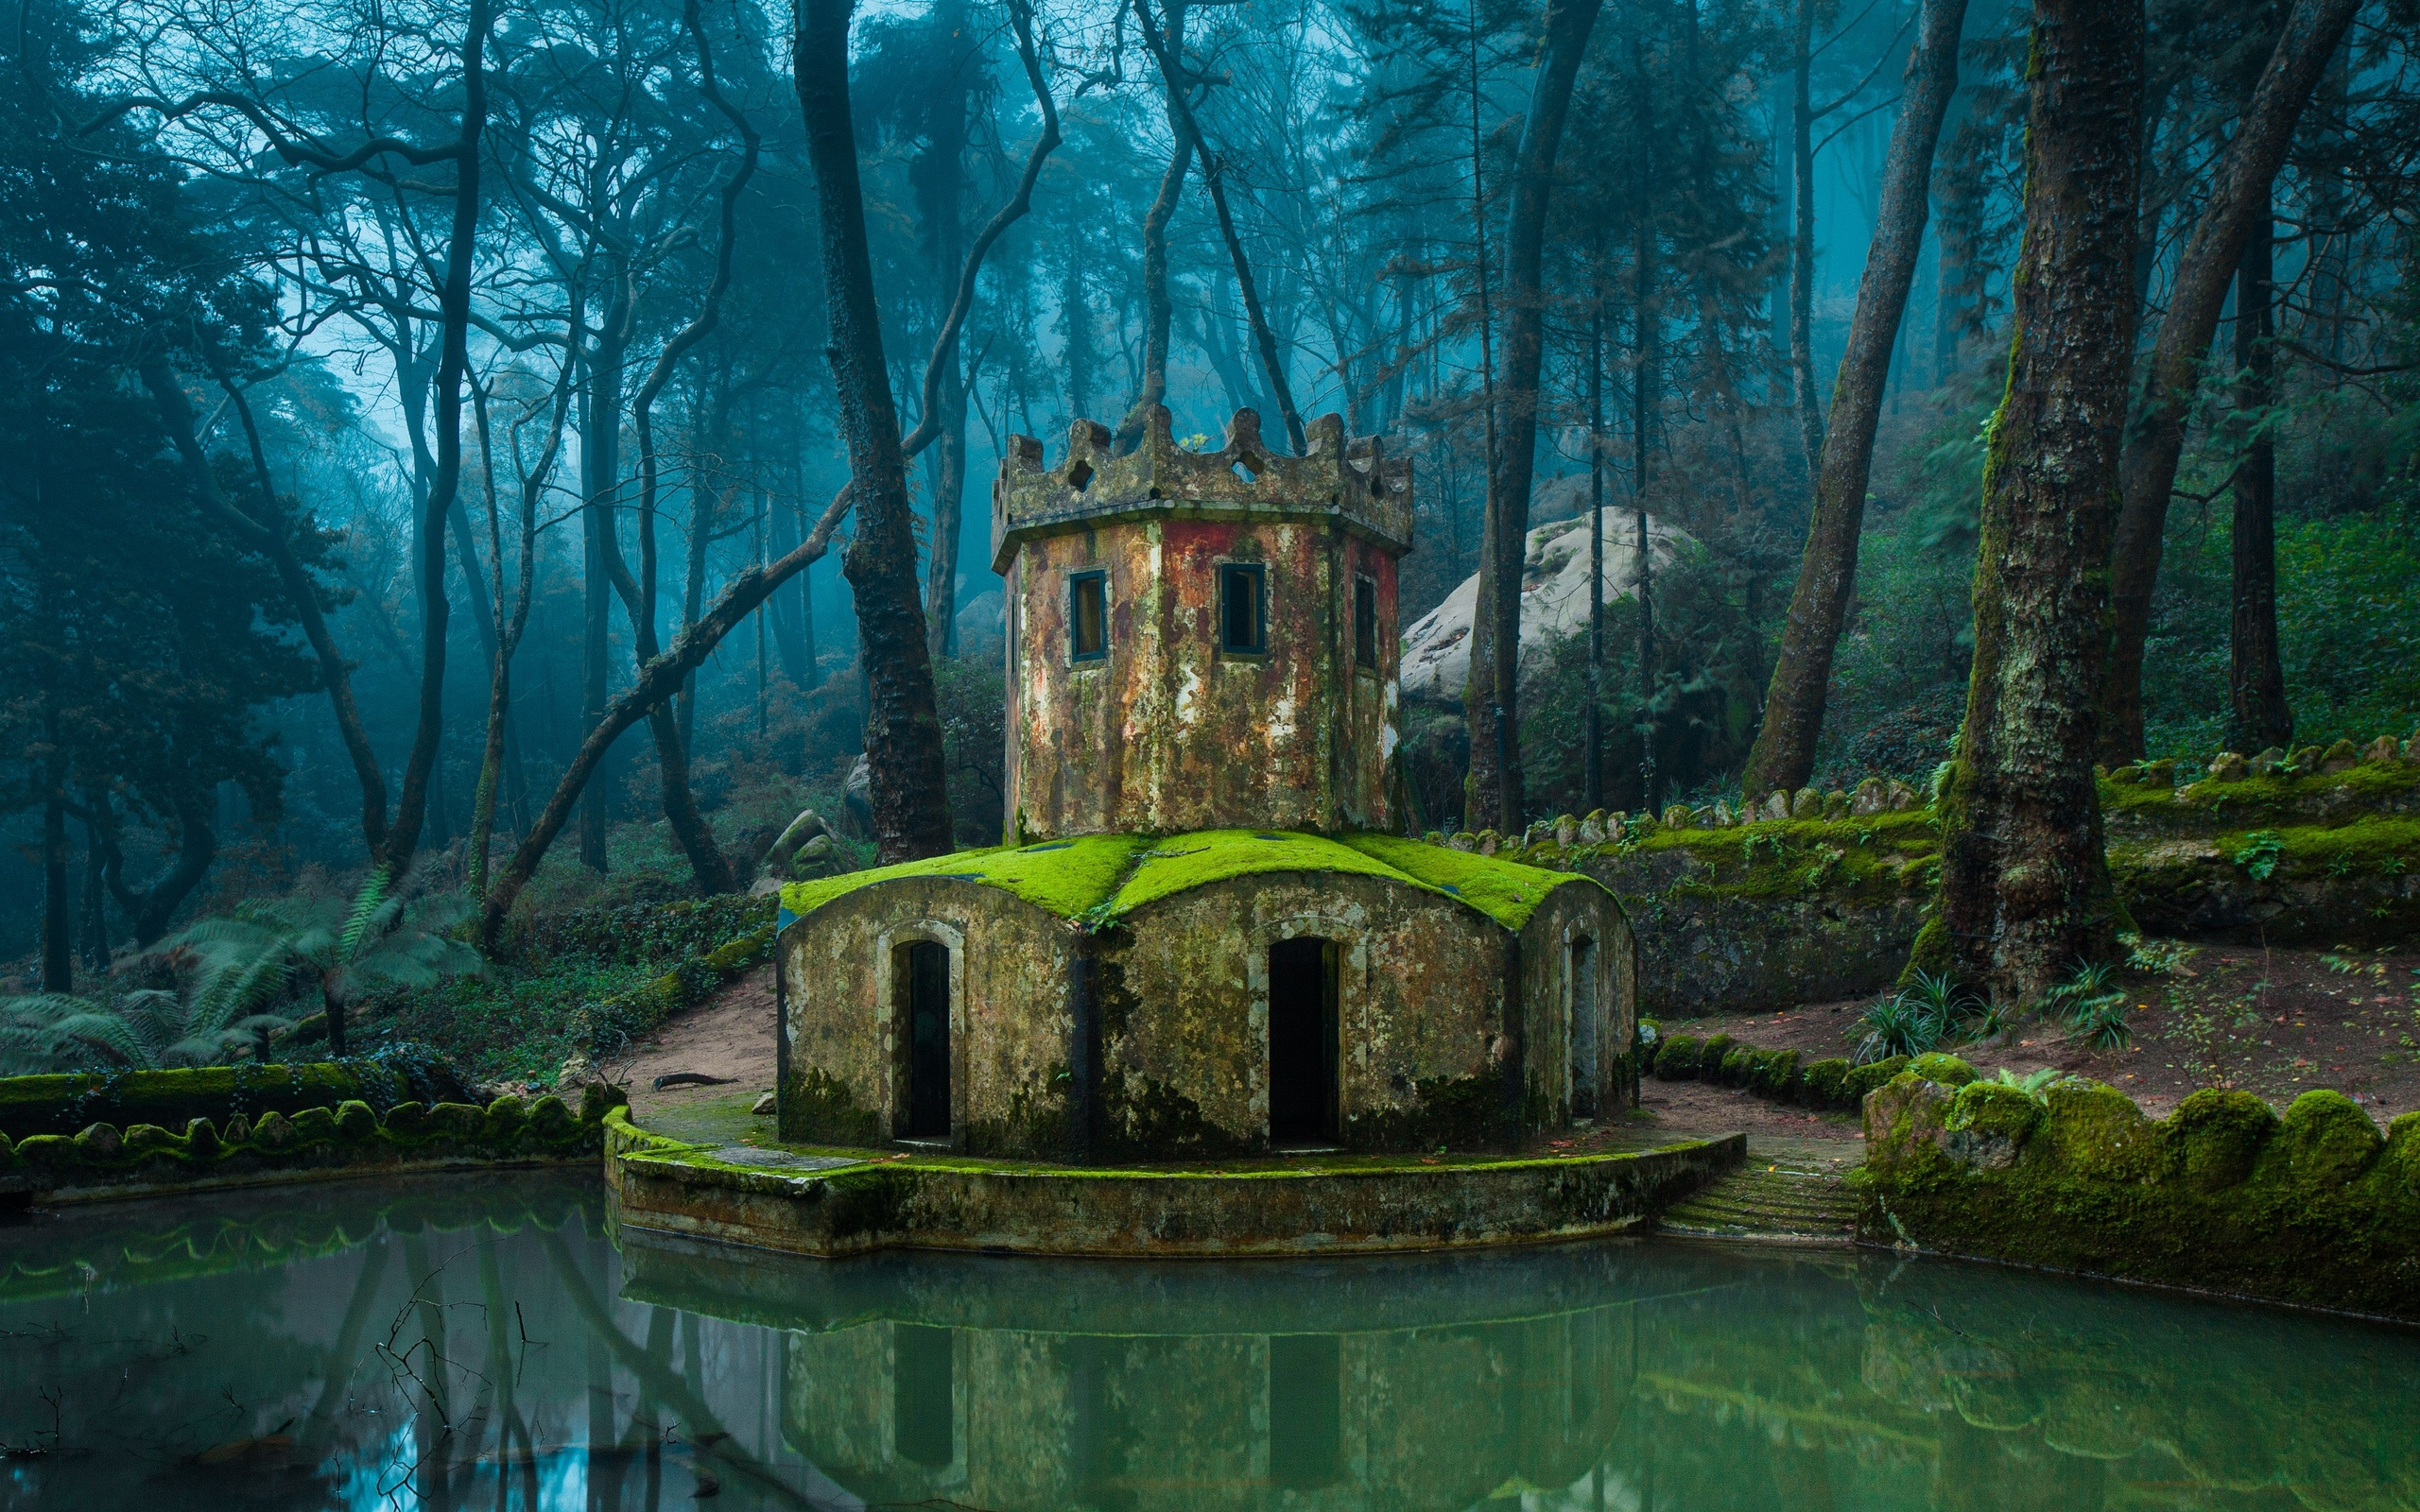 3d Wallpaper Of Dogs Sintra Portugal The Inverted Tower